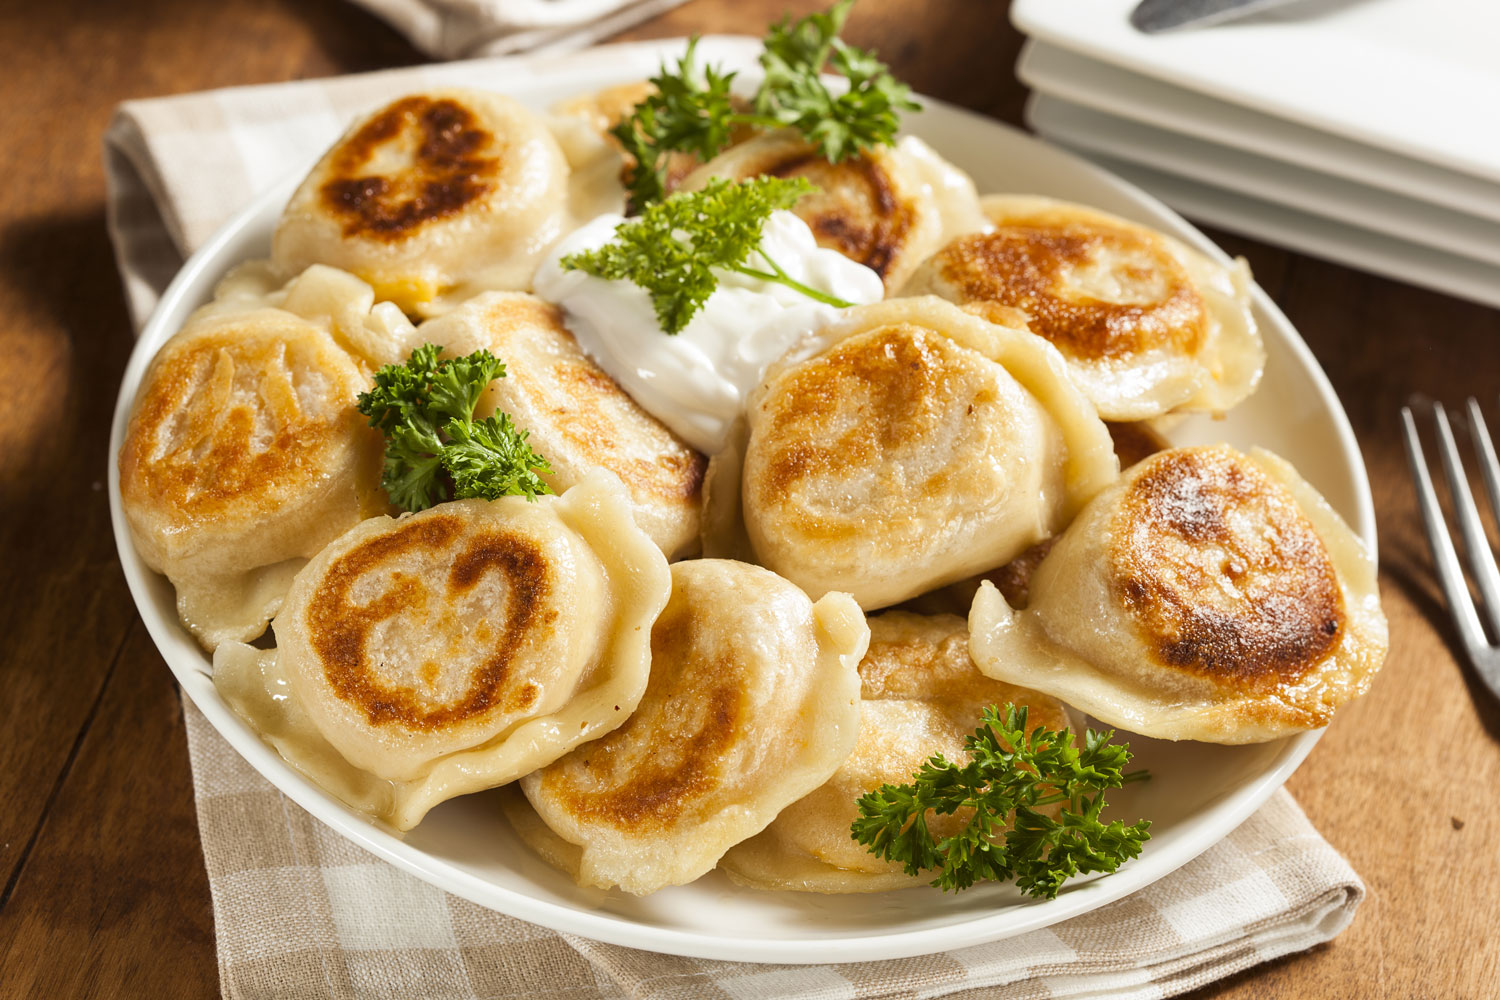 Homemade Polish Pierogis with Sour Cream and Parsley